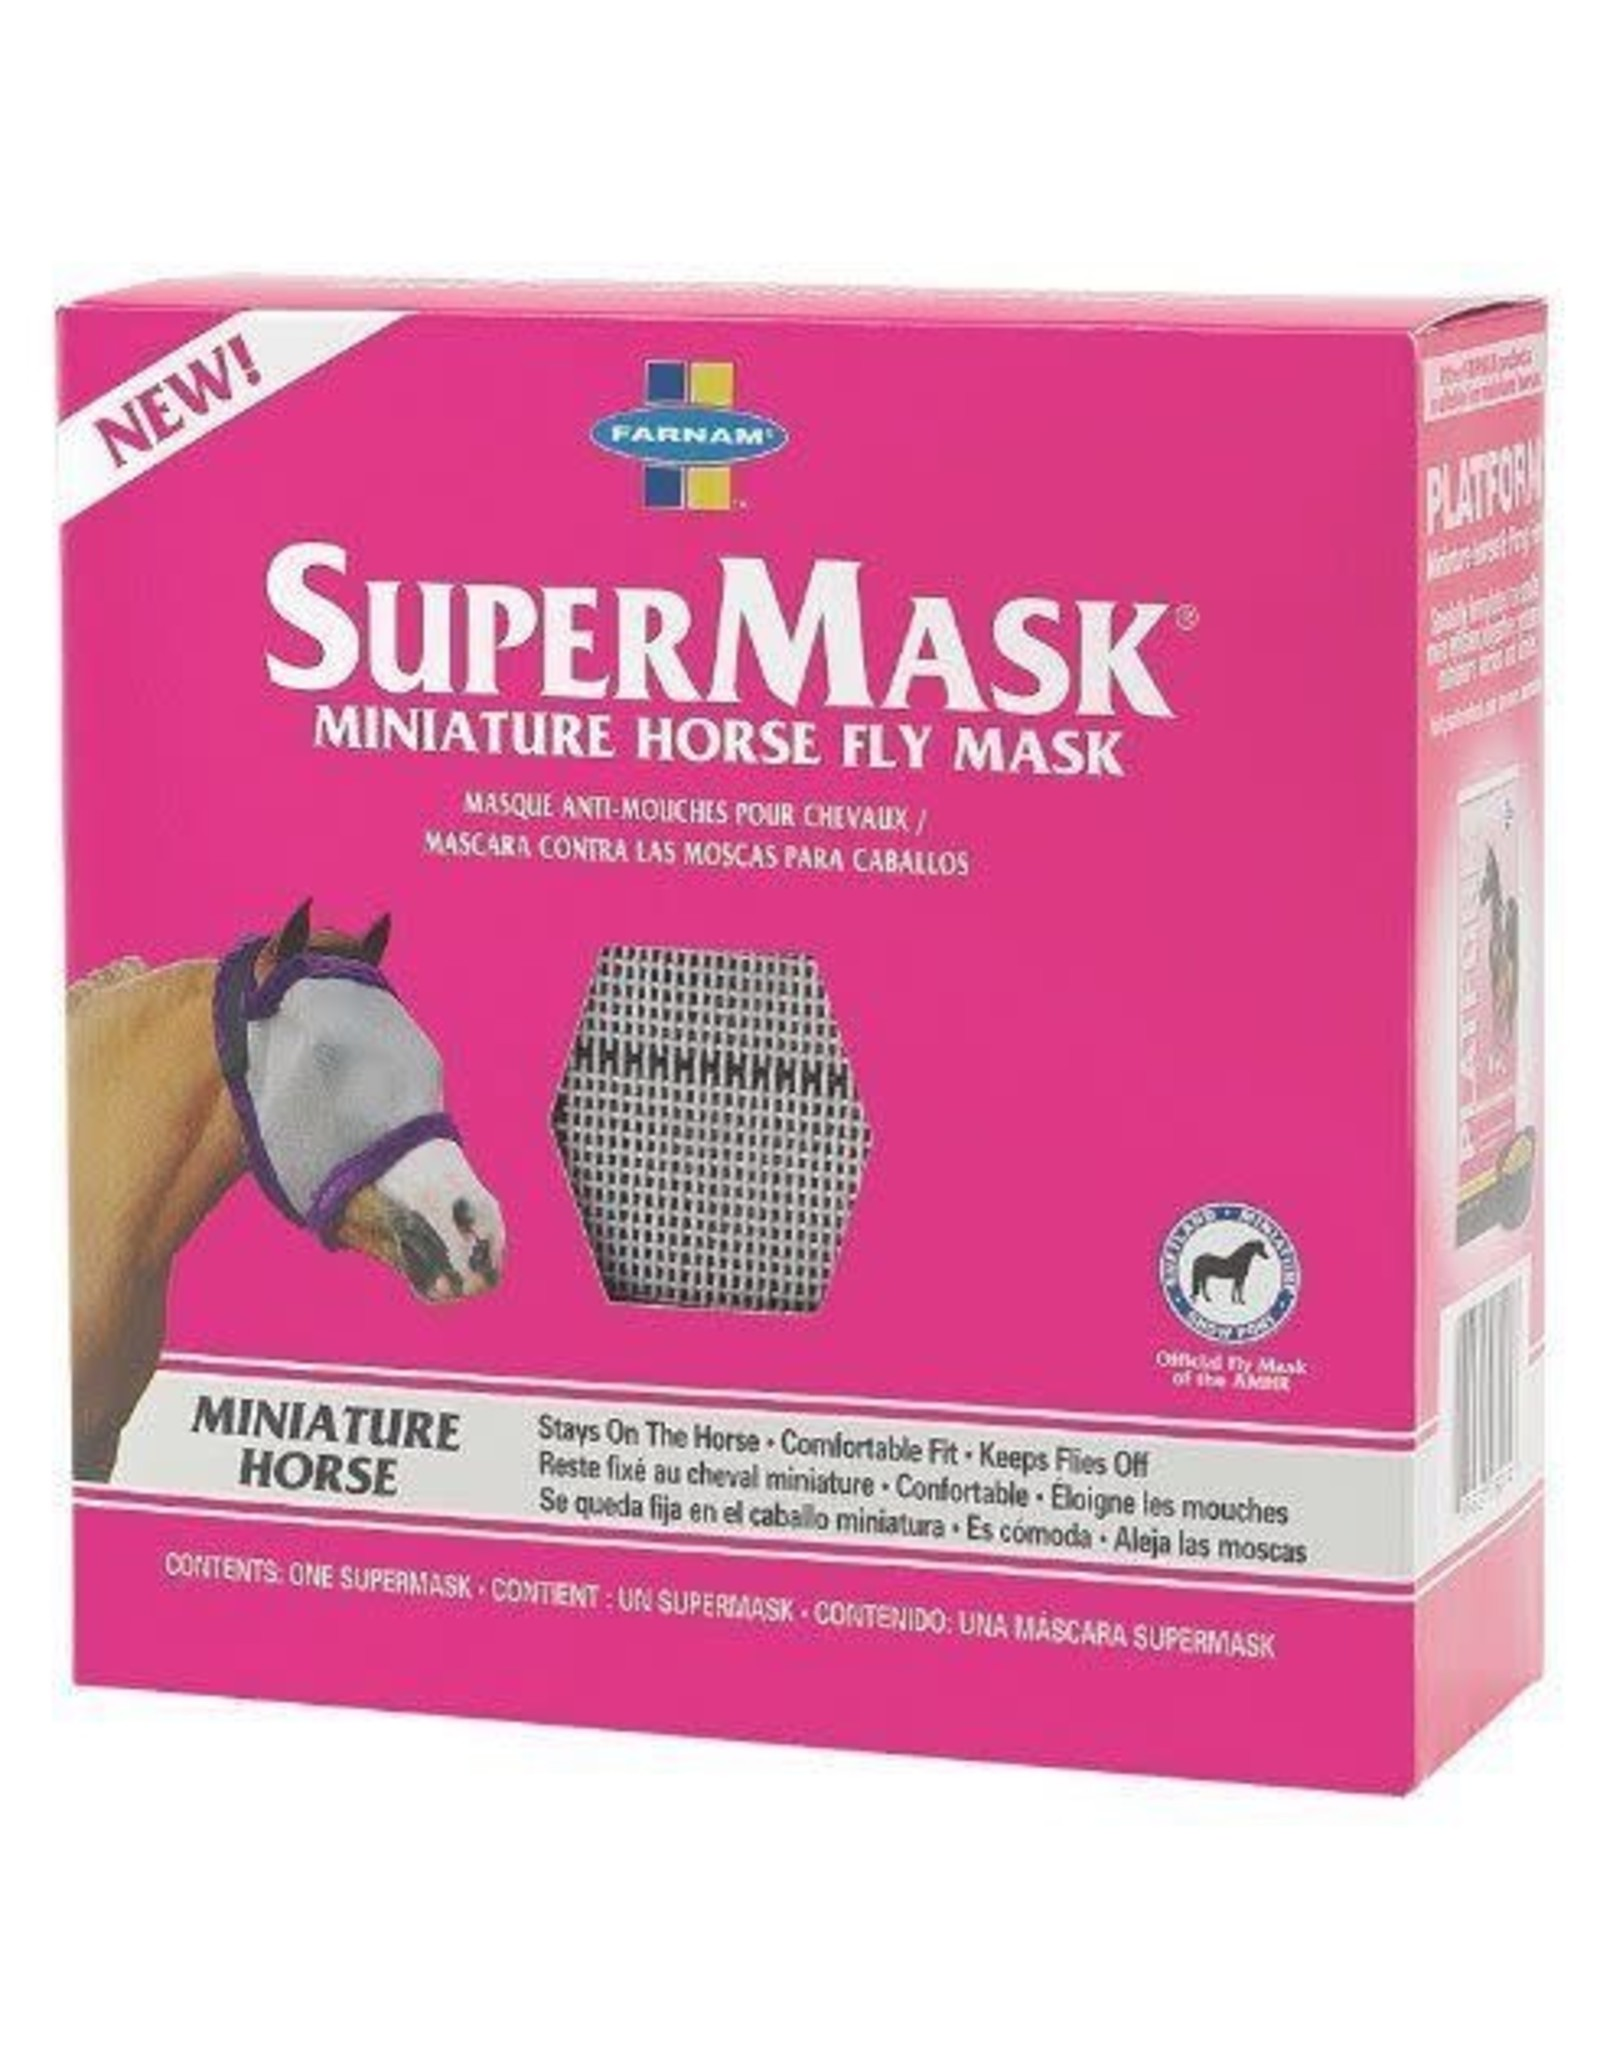 Supermask Miniature Horse Fly Mask